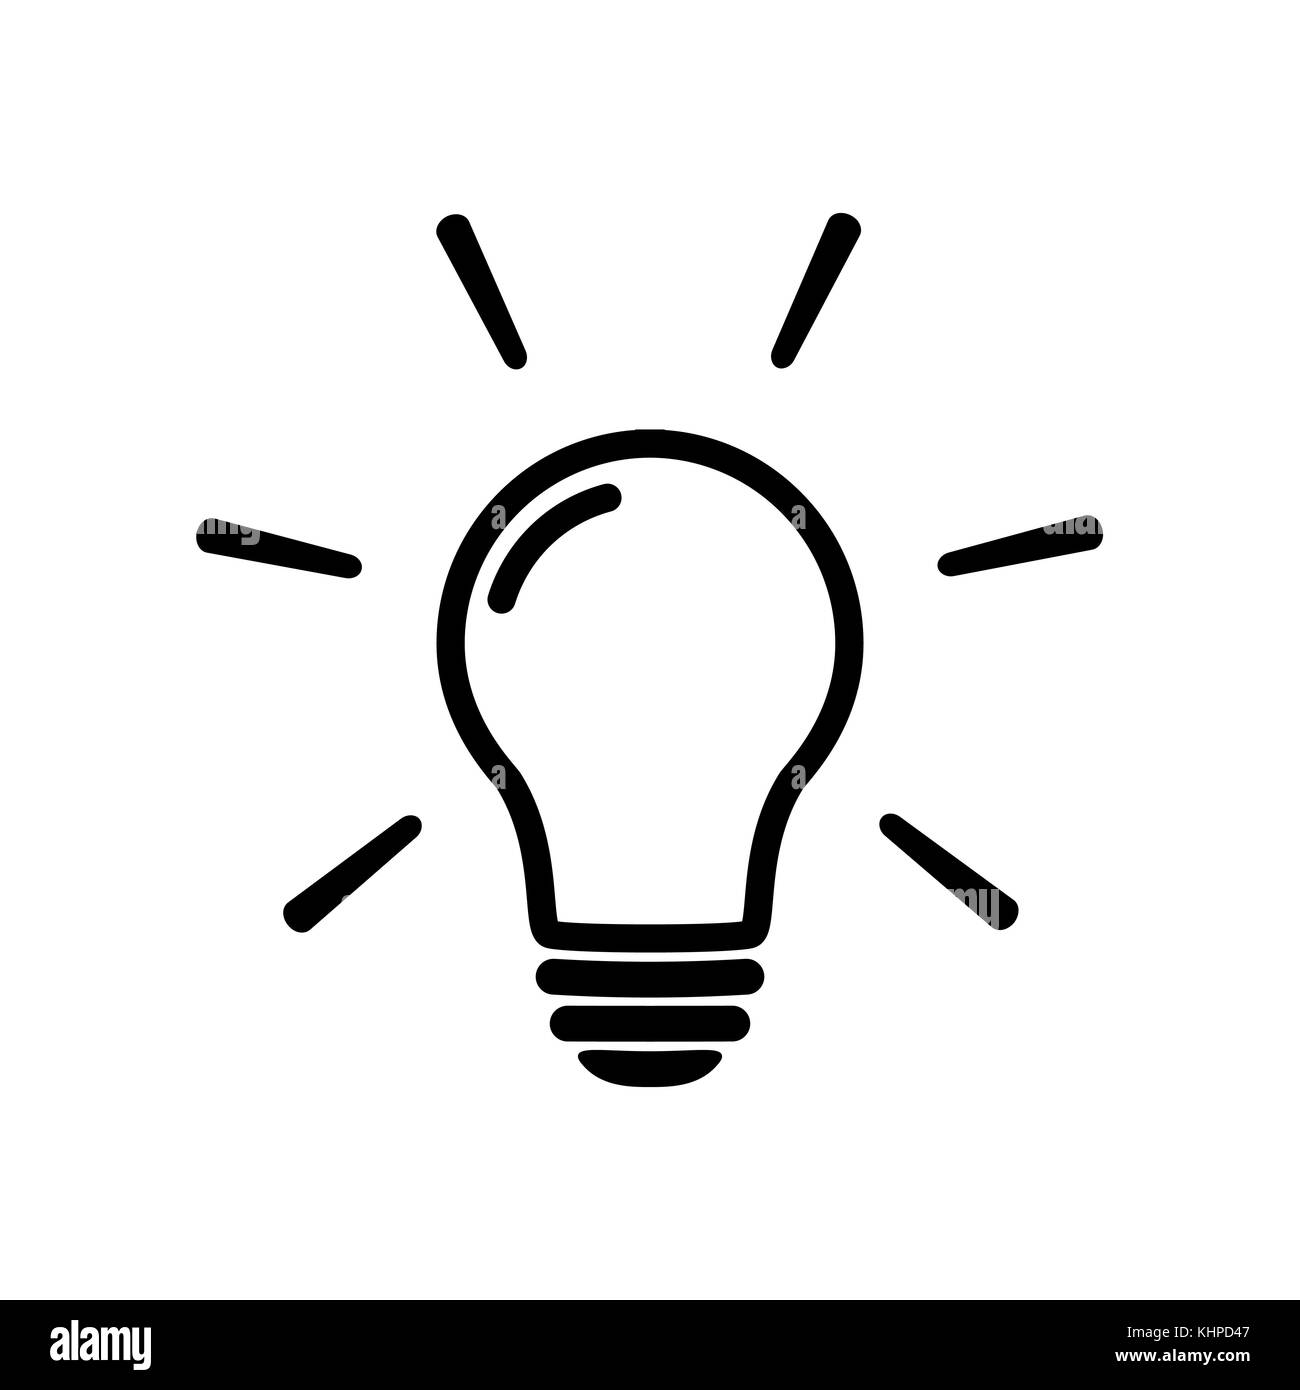 icon lighting. Wonderful Lighting Light Bulb Icon Isolated On White Line Vector Icon Sign In  sc 1 st  Maths Zone & Icon Lighting Lighting 75000 PNGSVGCSSPDFEPS Inside Icon Lighting ...